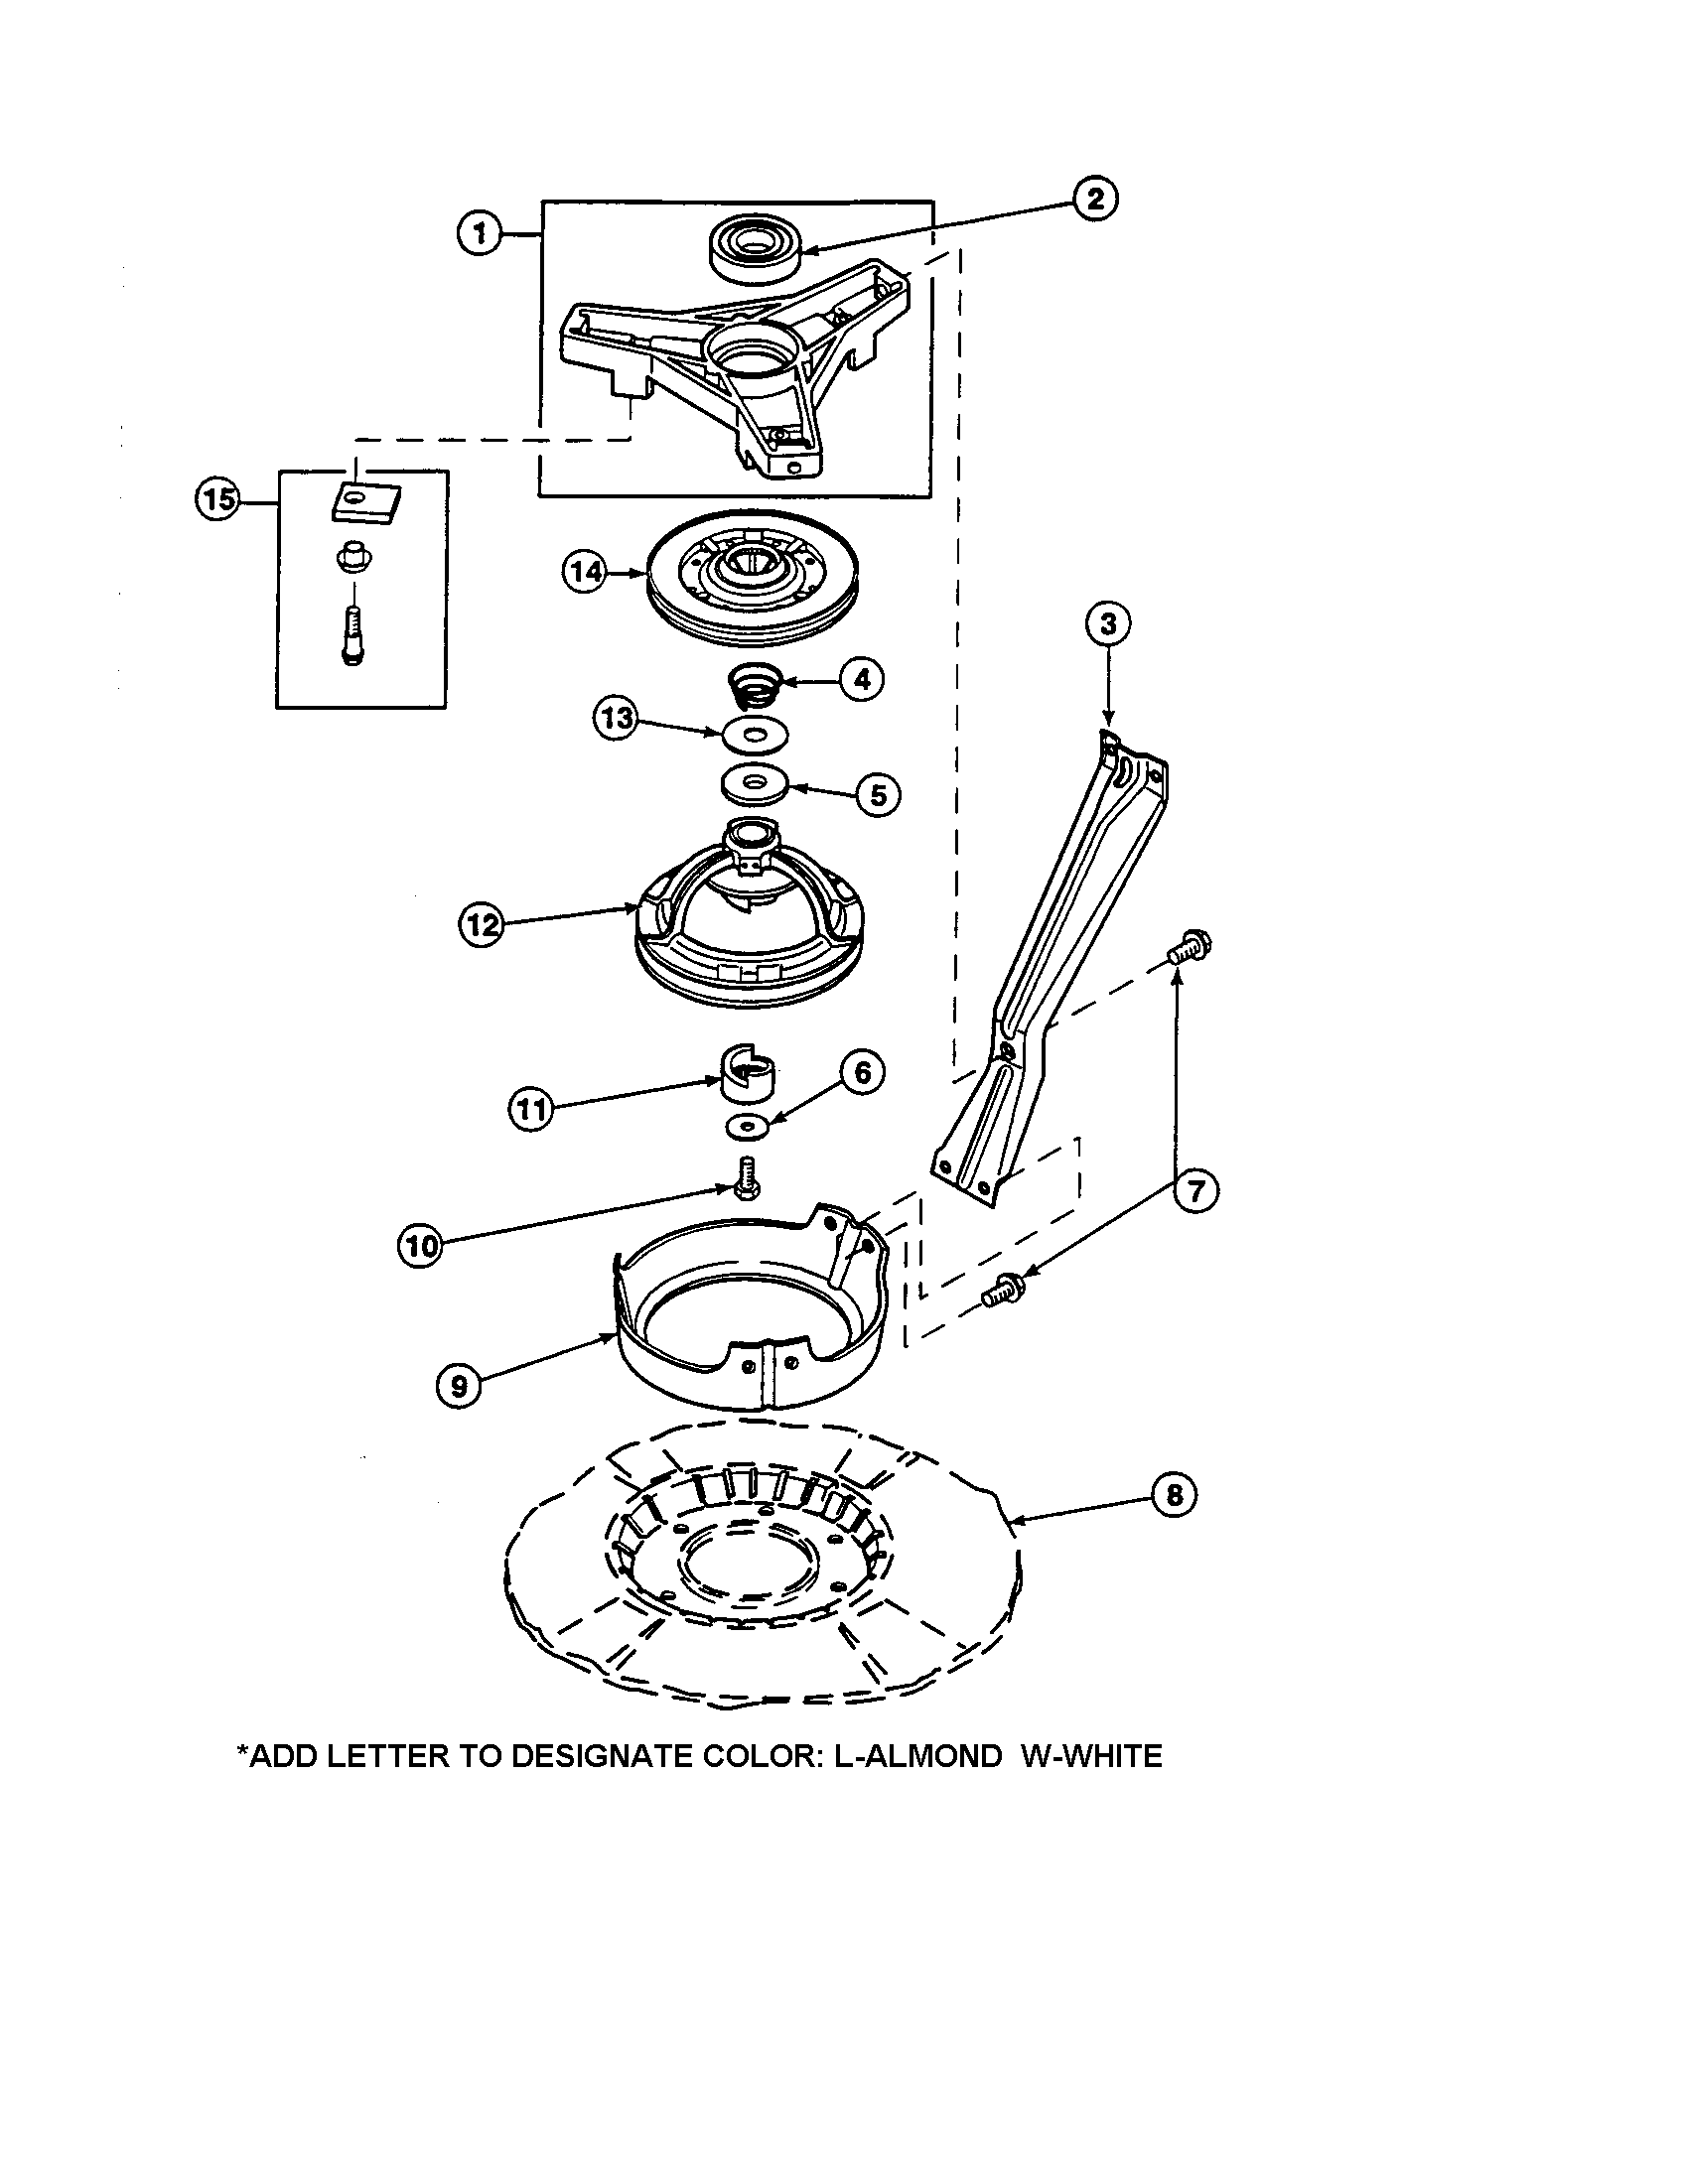 1994 Cadillac Deville Blower Motor Resistor Location